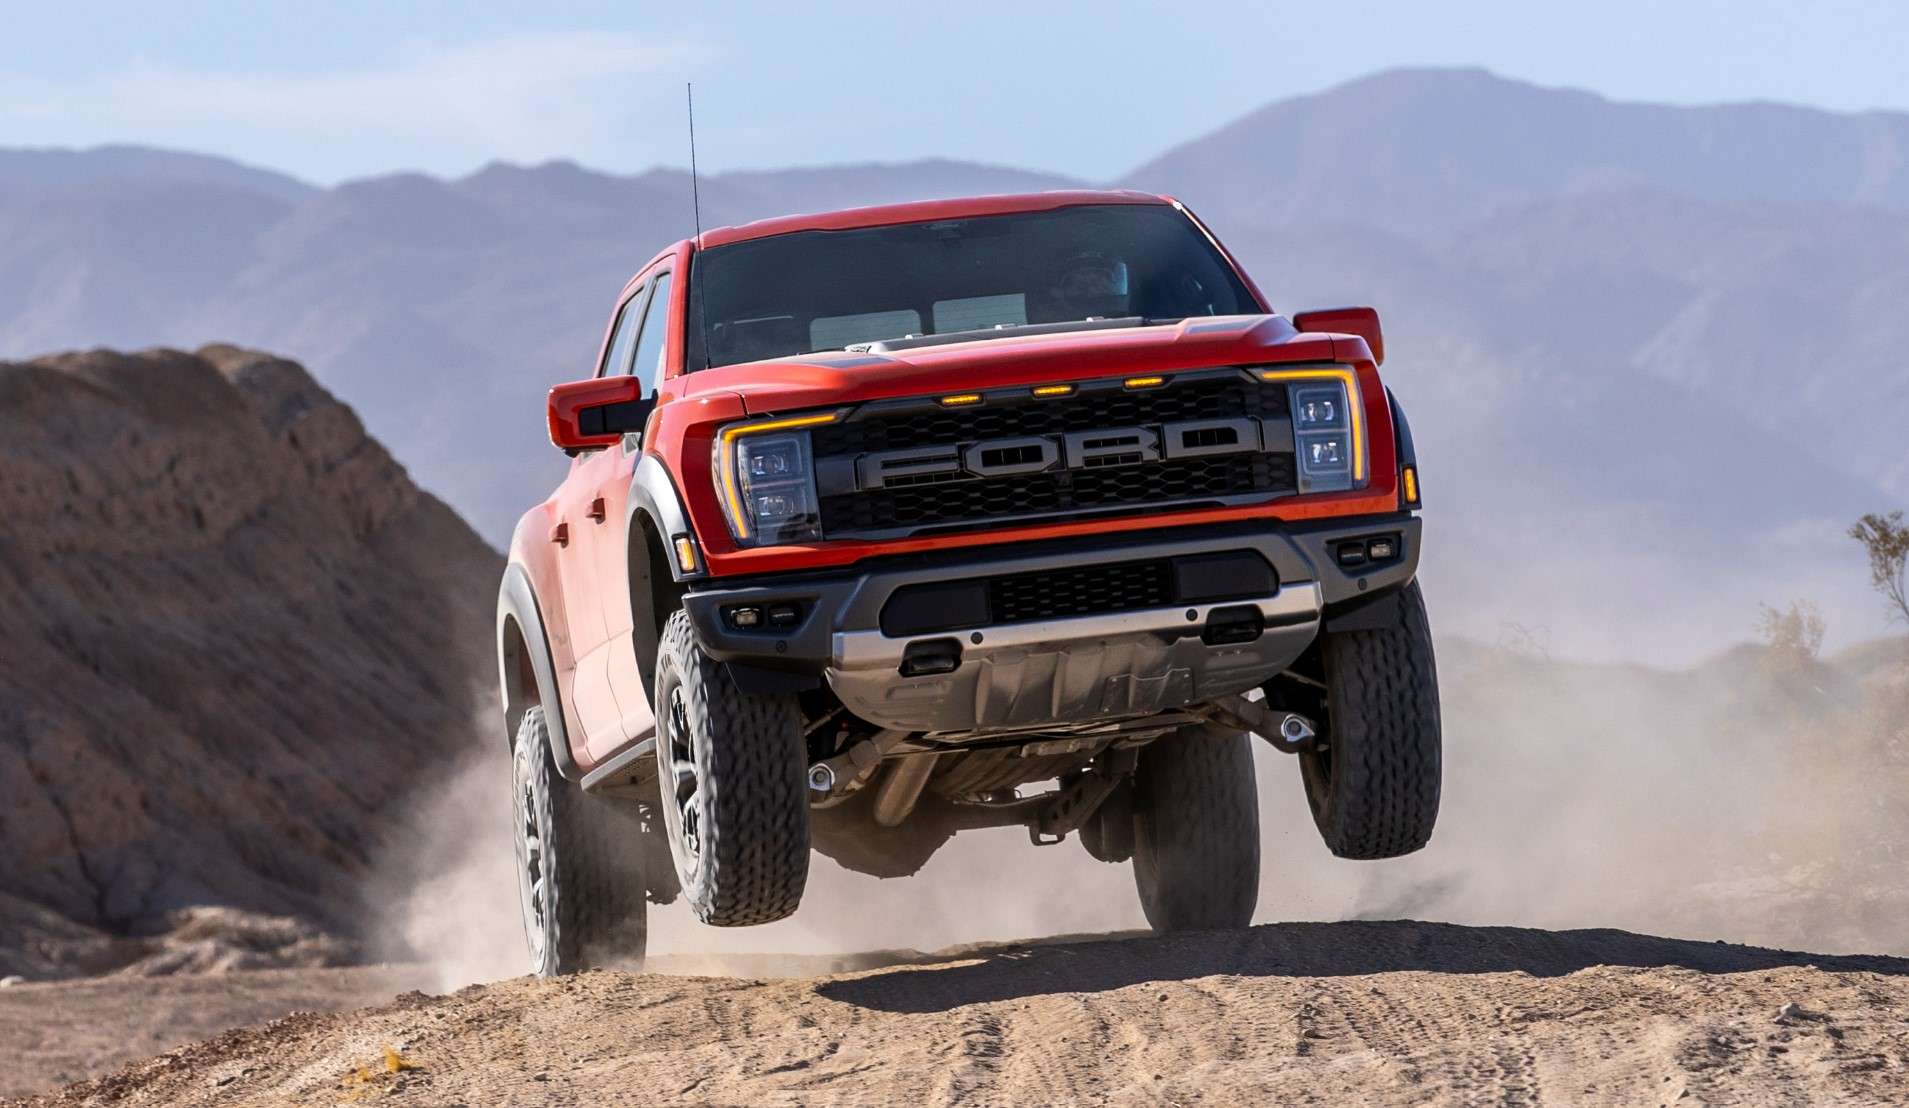 The performance-laden Raptor variant of the iconic Ford F-150 debuted in 2009 and has since become wildly popular, selling more units in the United States in 2017-2020 than all Porsche cars put together, or all Chevrolet Corvettes. Let's see what the latest iteration brings to the table, shall we?